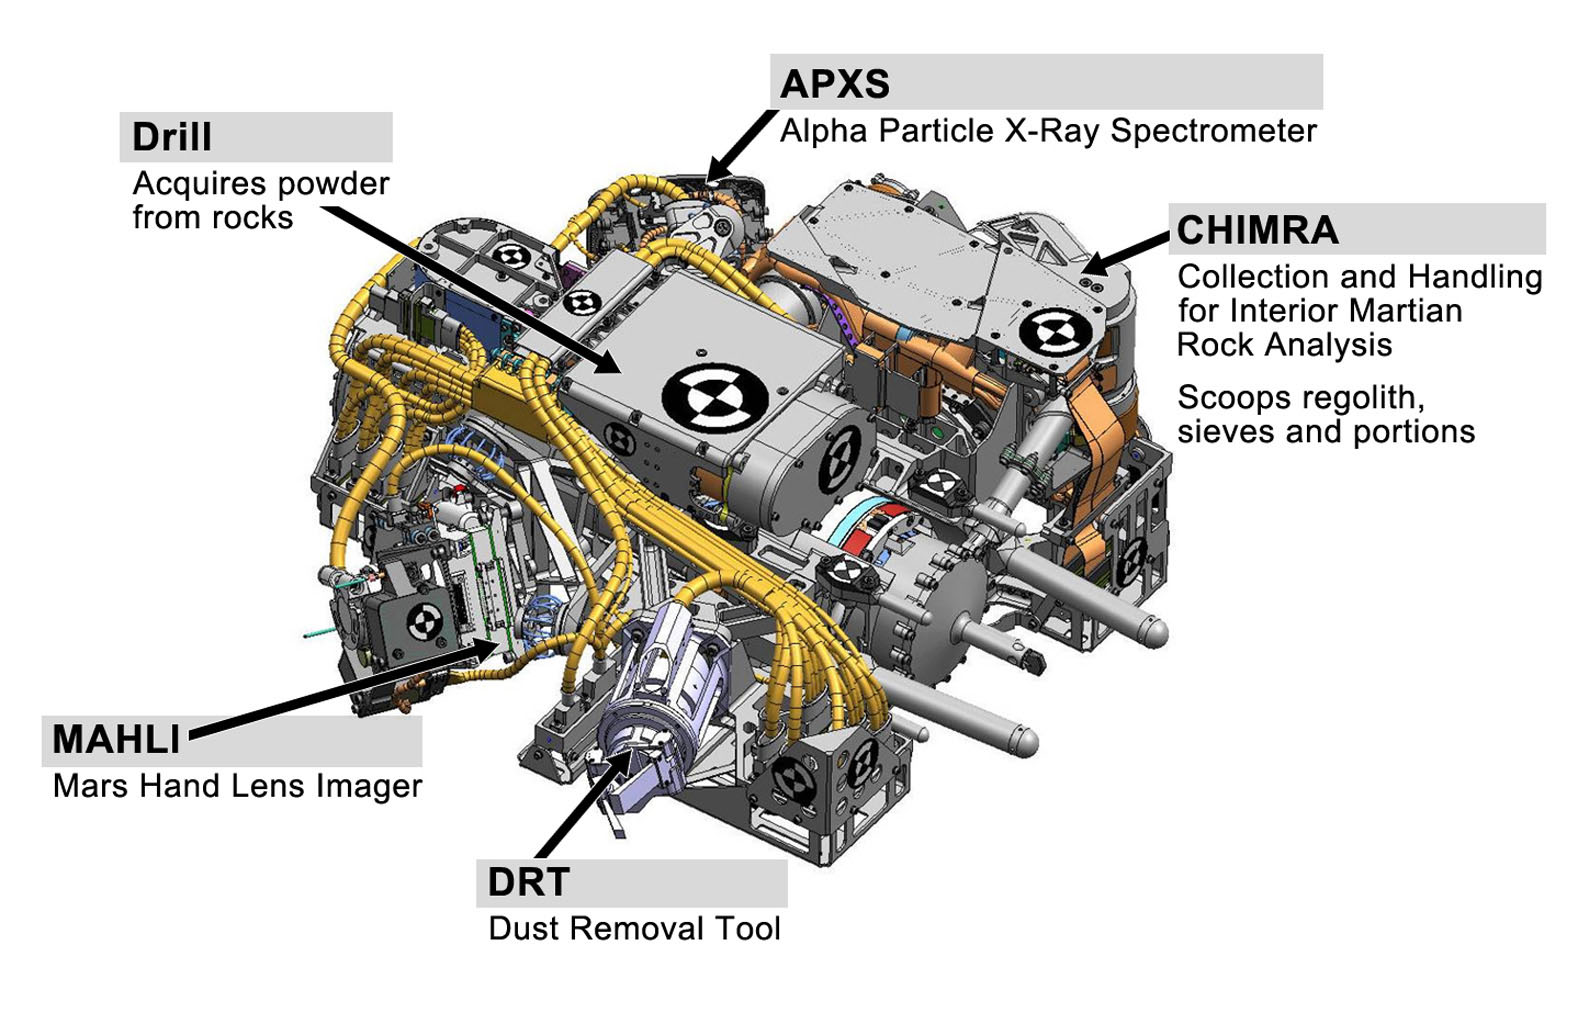 This engineering drawing shows the five devices that make up the turret at the end of the arm on NASA's Curiosity rover. These include: the drill for acquiring powdered samples from interiors of rocks.